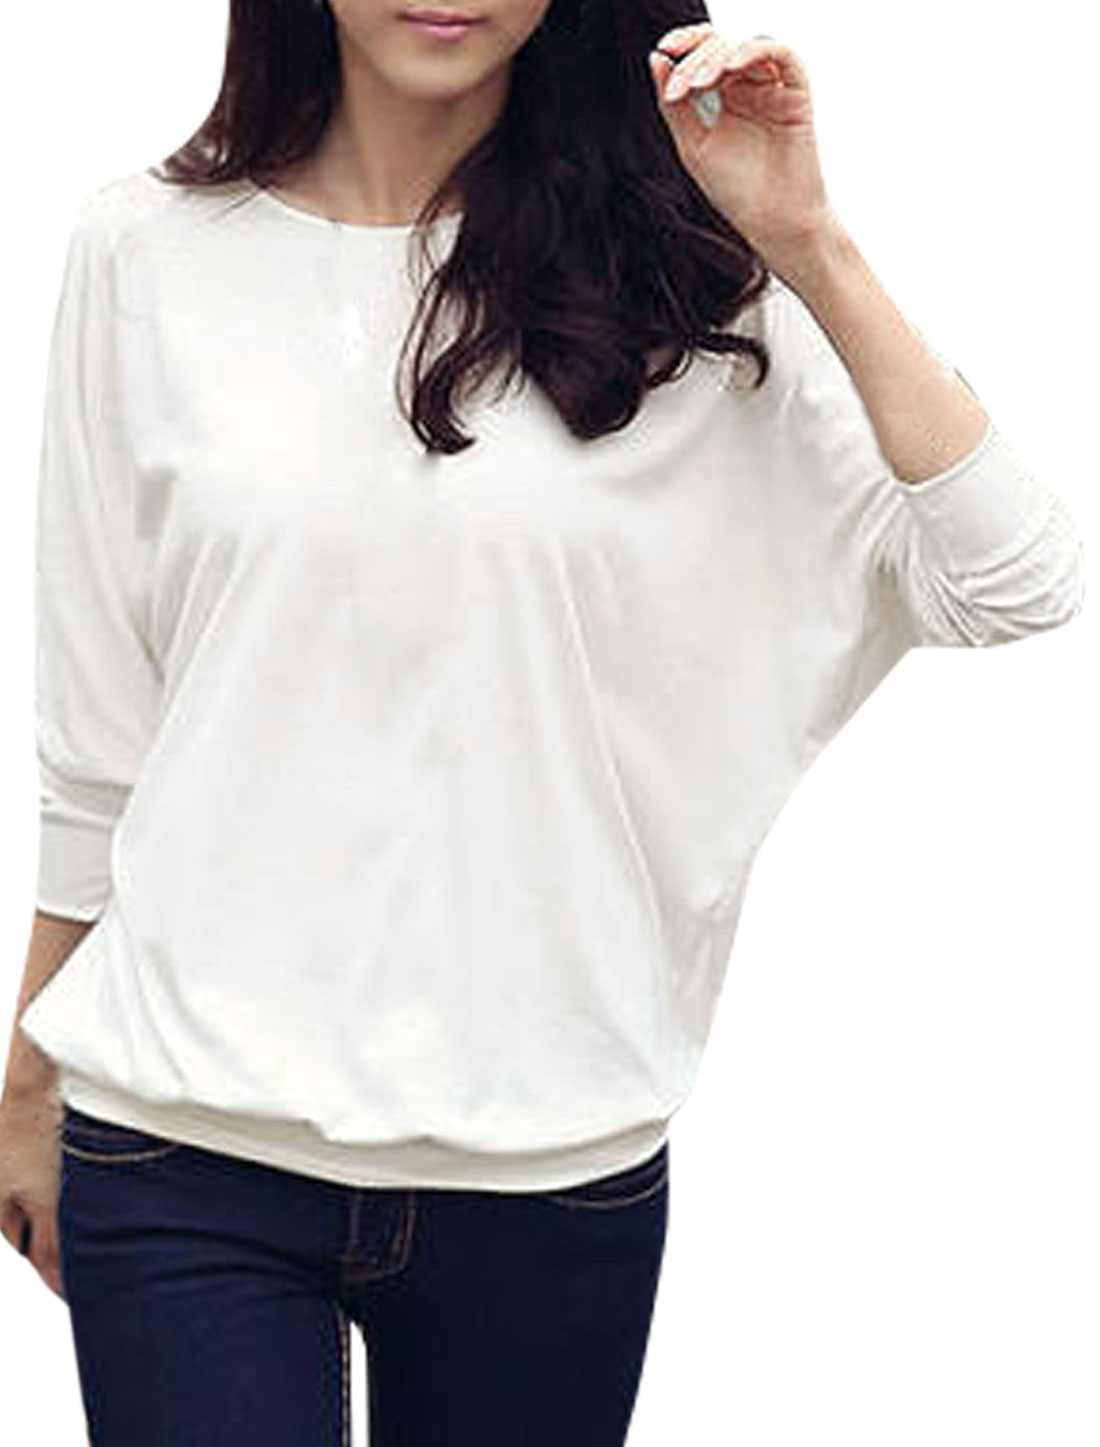 Ladies White Long Dolman Sleeve Mesh Decor Stretchy Autumn Casual Top Shirt L